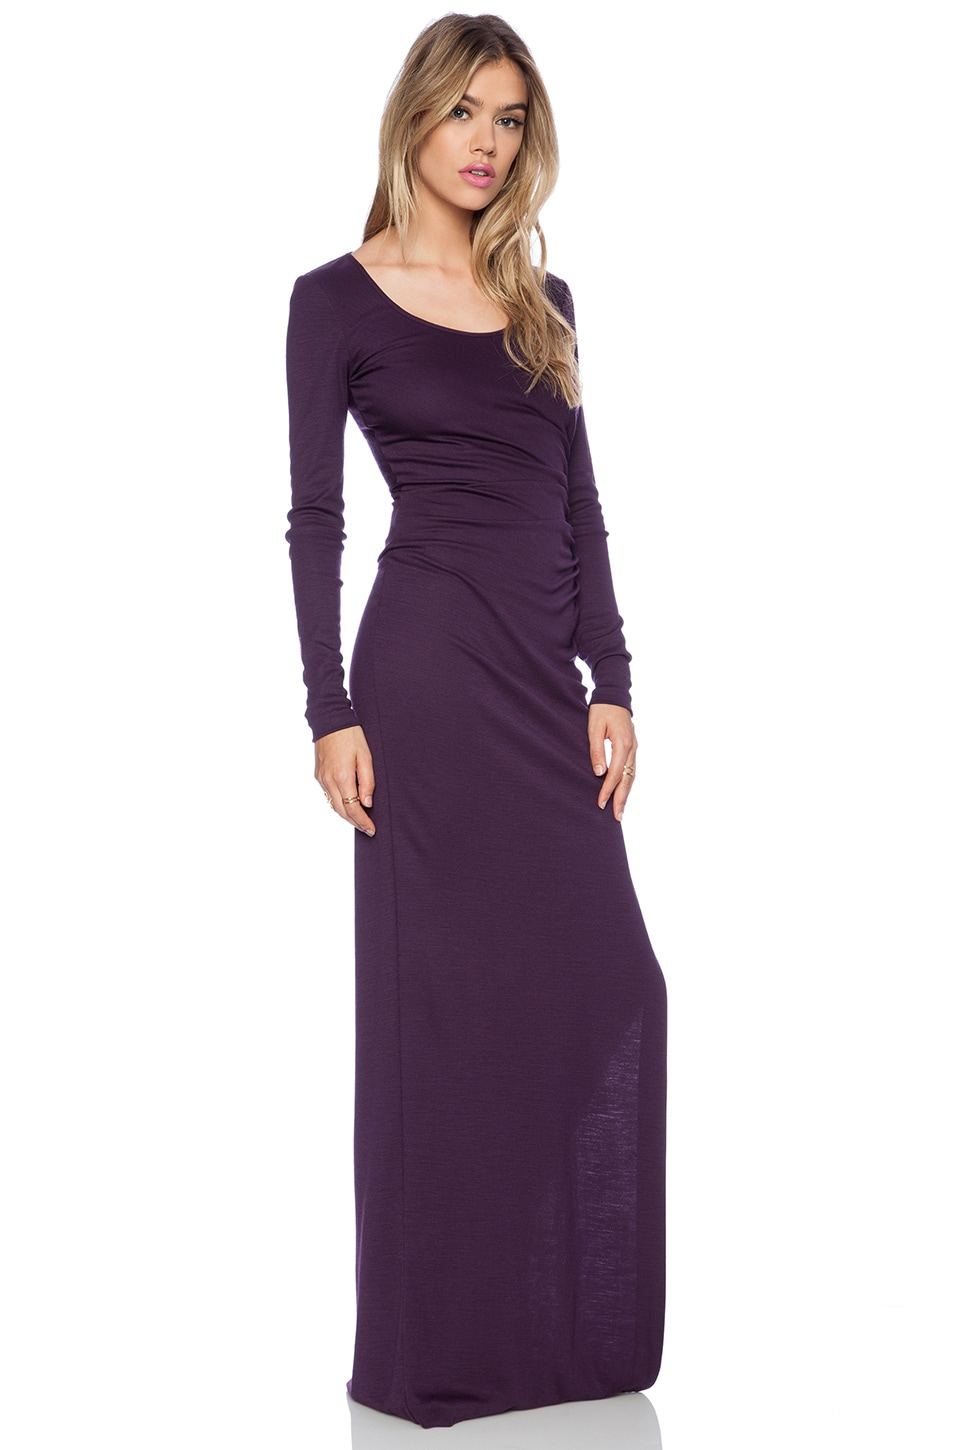 Dvf Maxi Dress Sale Diane von Furstenberg Maxi